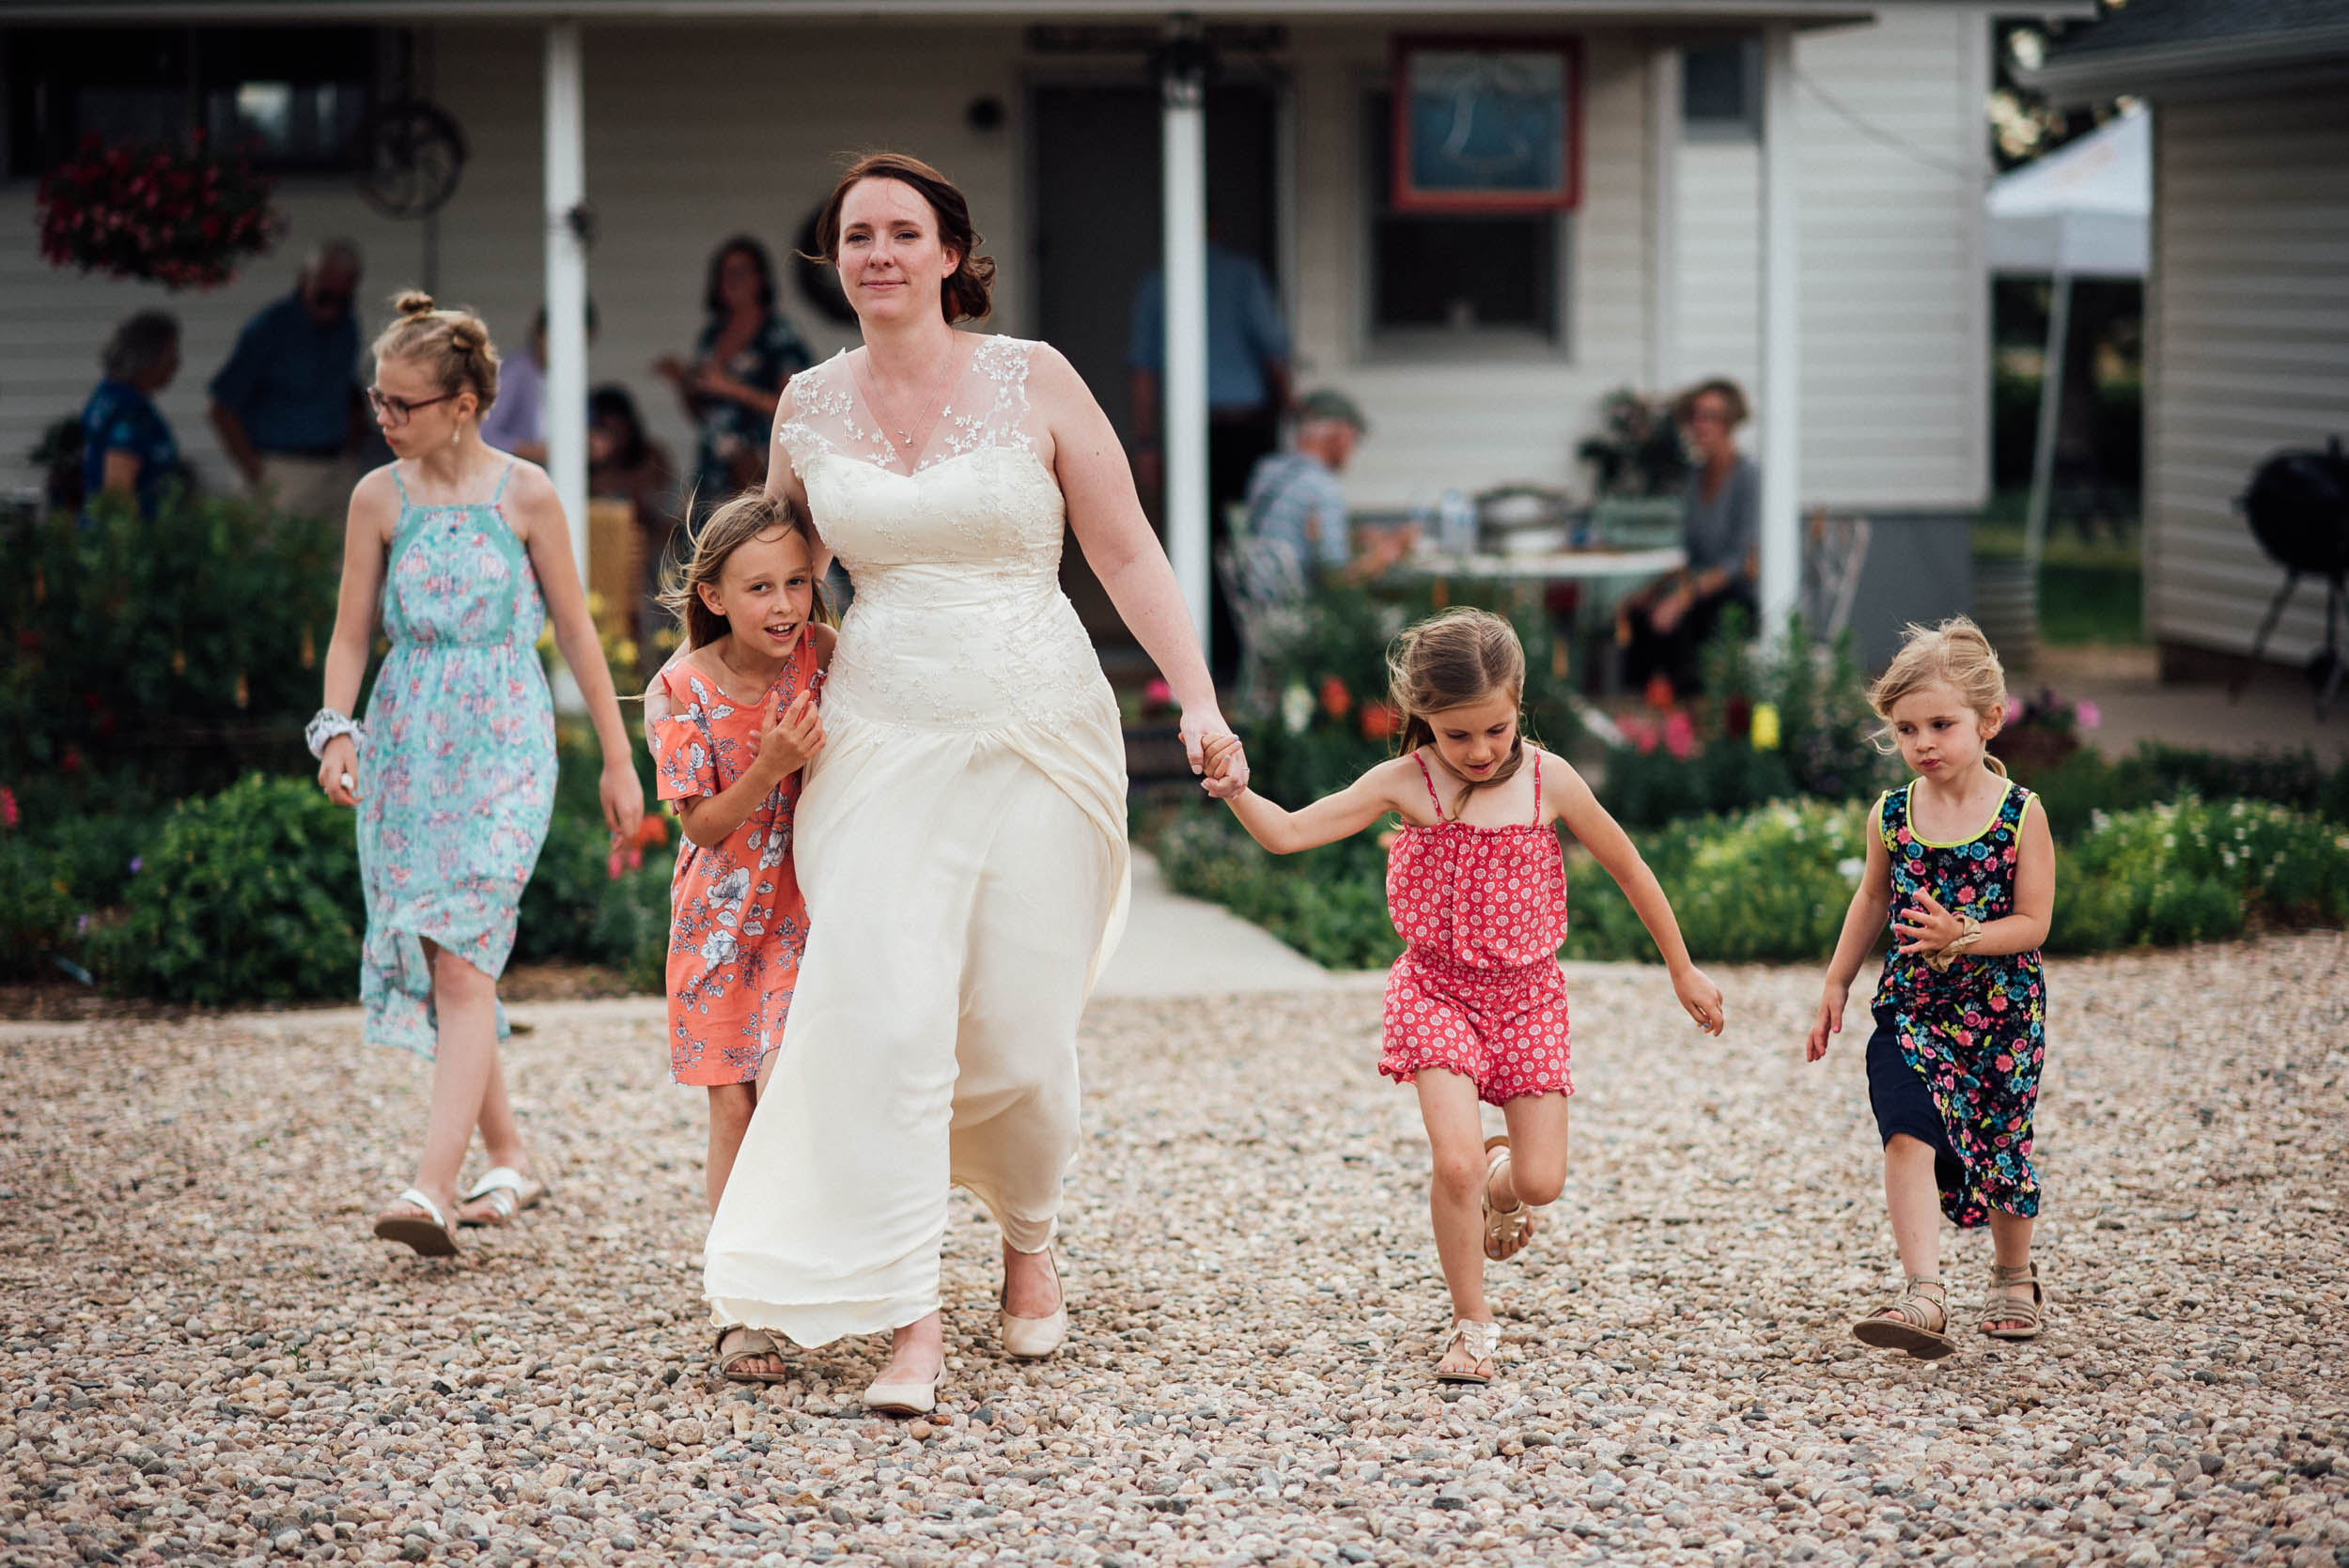 Colorado-Backyard-Wedding-Photographer-63.jpg